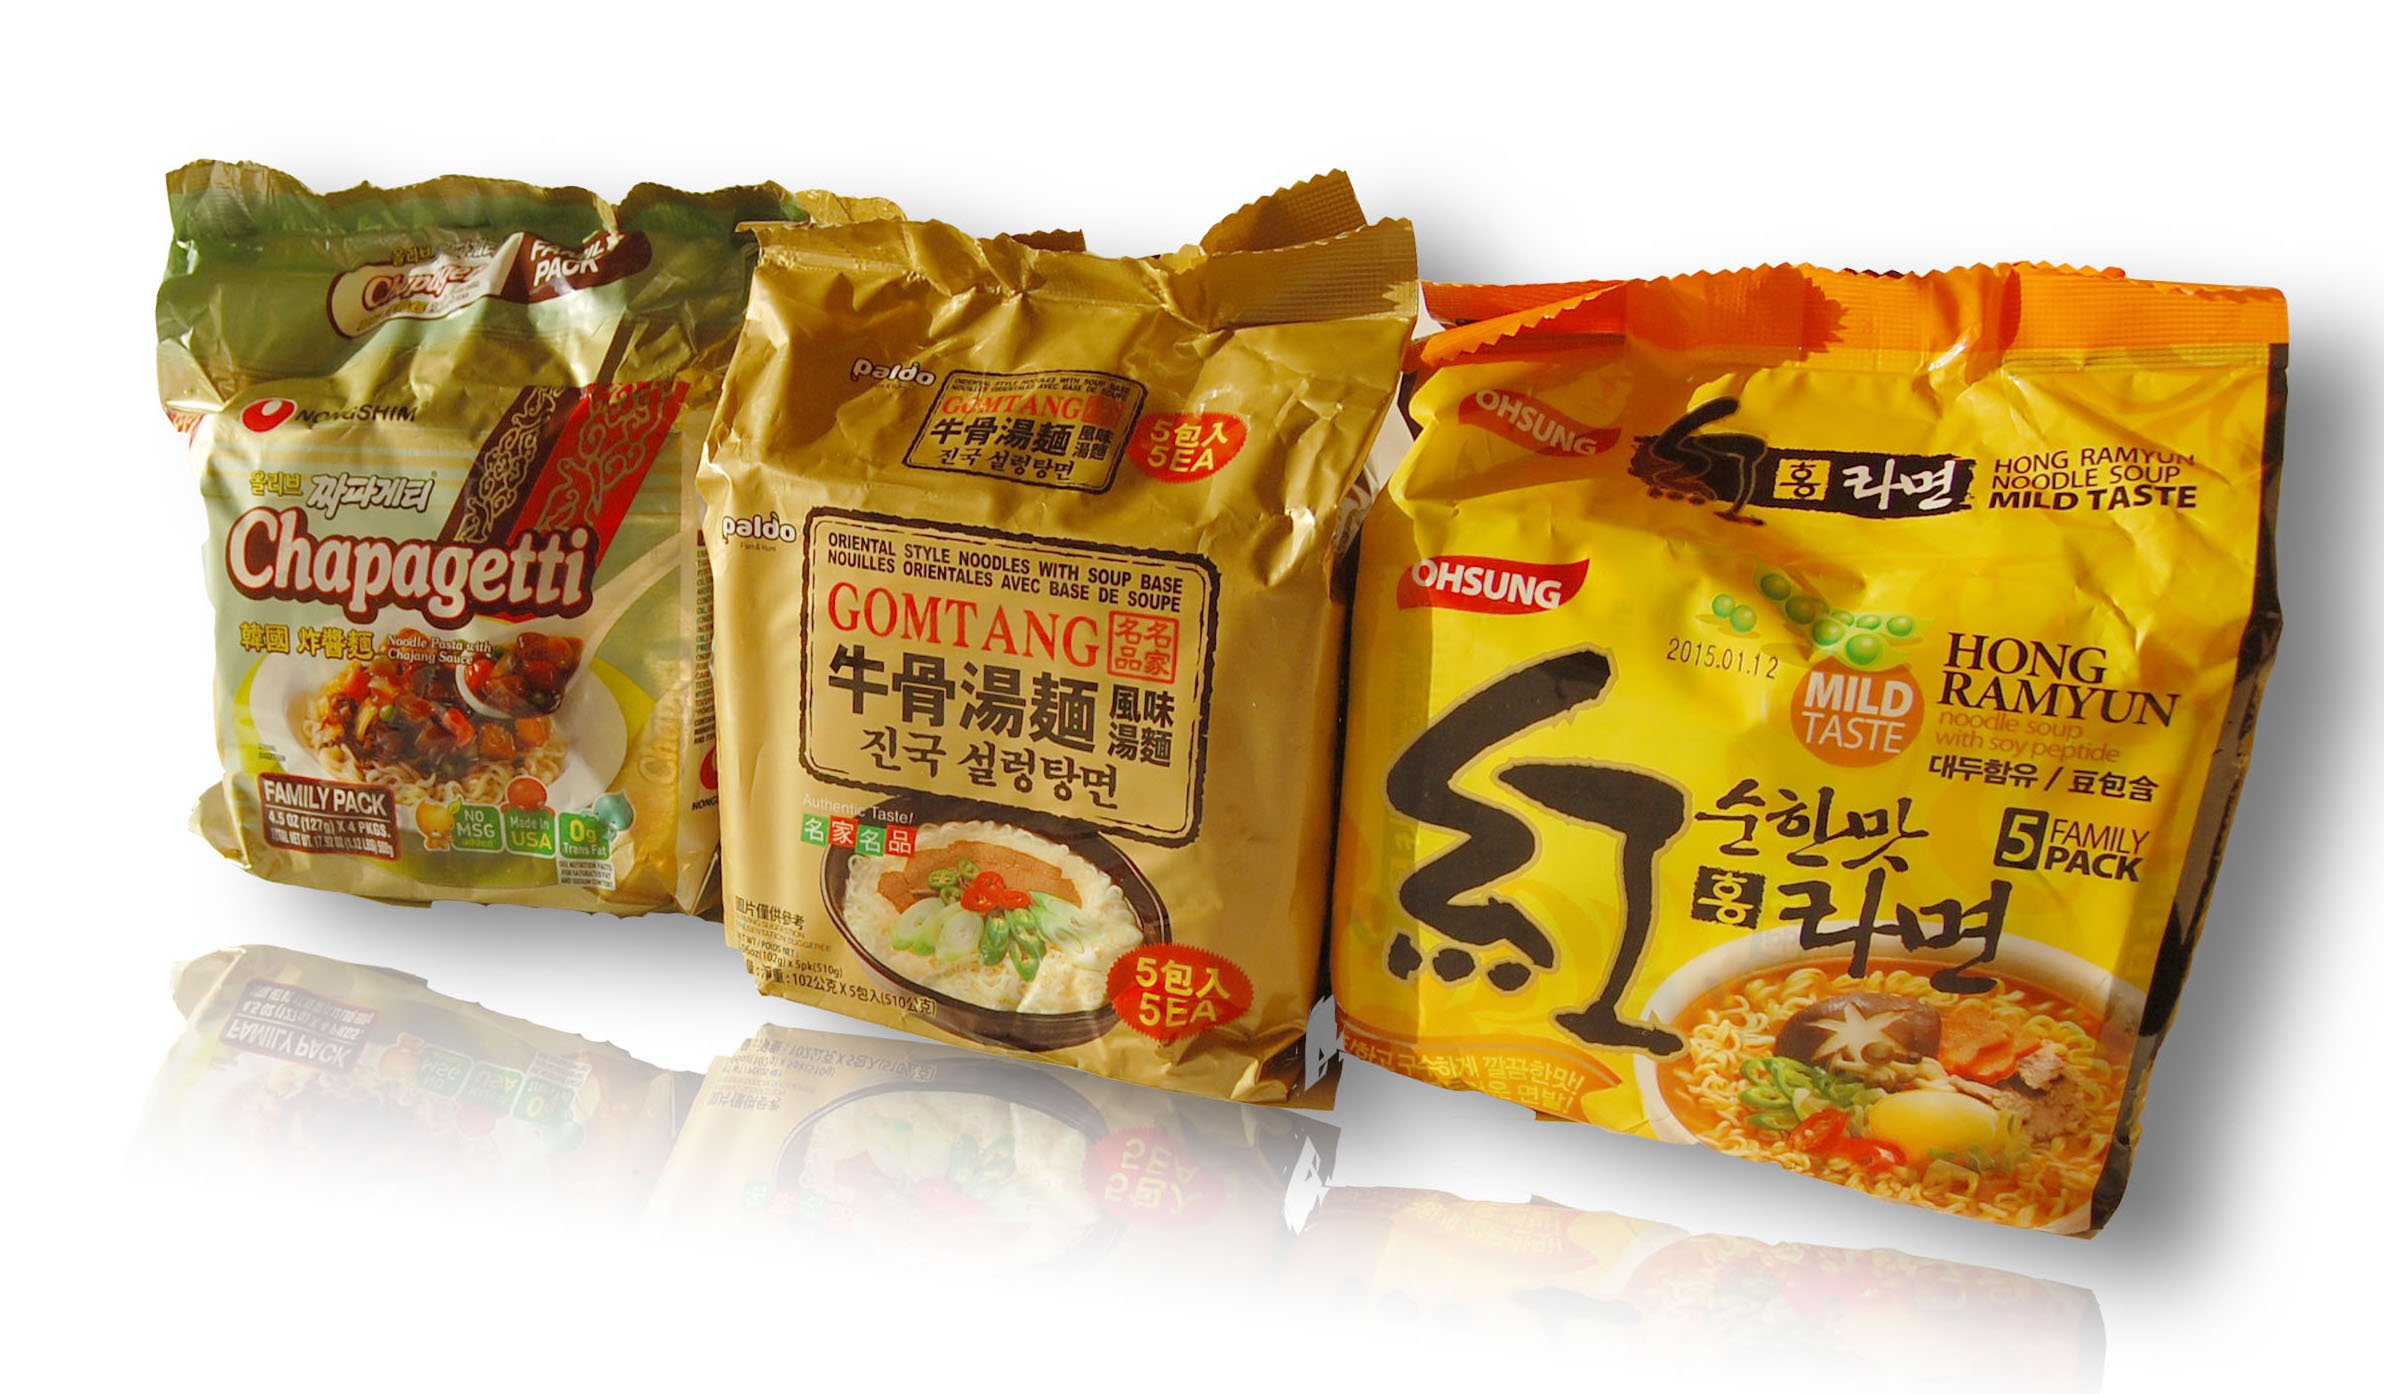 Ramen Variety Hong Ramyun Noodle Soup with Soy Mild Taste 5 Family Pack + Paldo Gomtang Oriental Style Noodles with Soup Base 5 Family Packages + Nongshim Chapagetti Noodle Pasta with Chajang Sauce 127g x 4 Packages (14-packs)